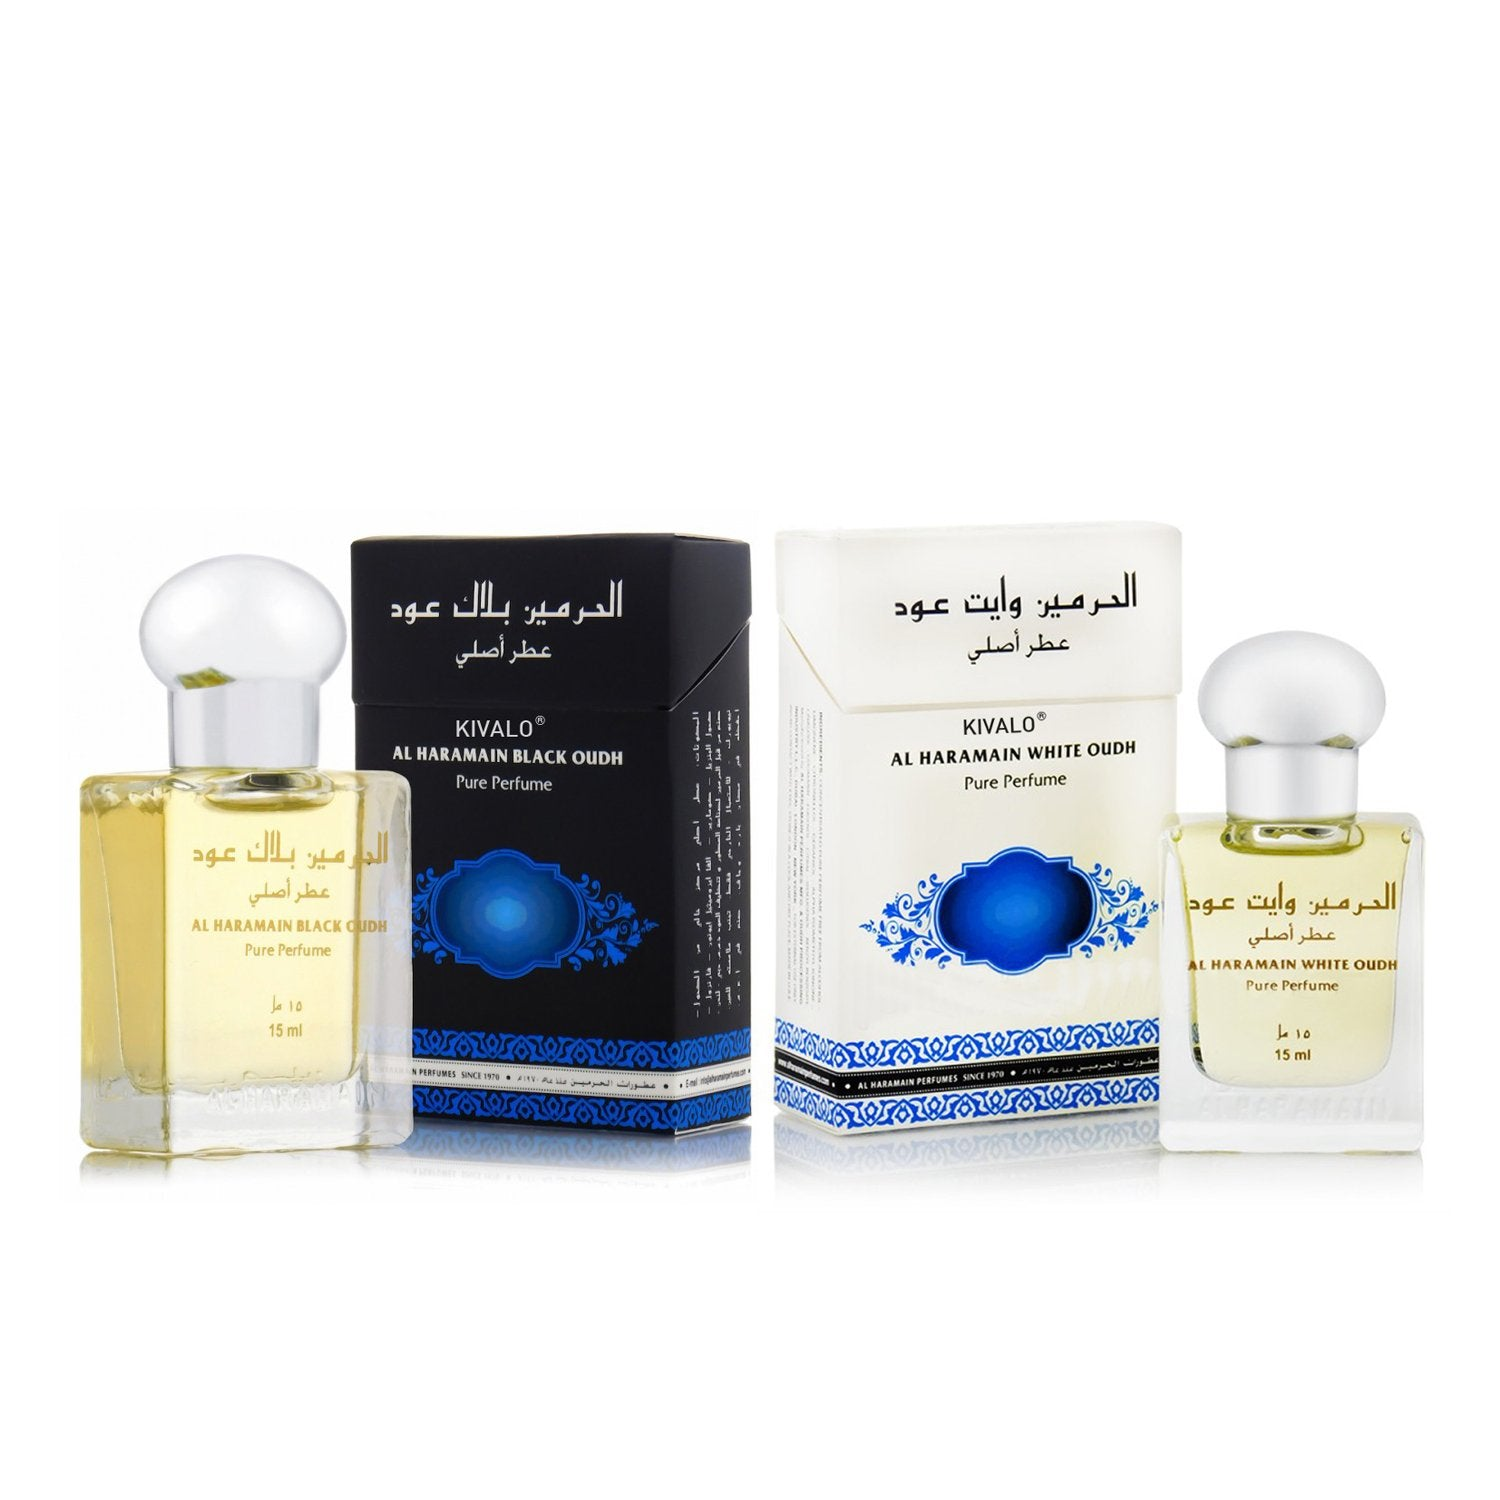 Al Haramain Black Oudh & White Oudh Roll on Attar Pack of 2  - 2 x 15ml